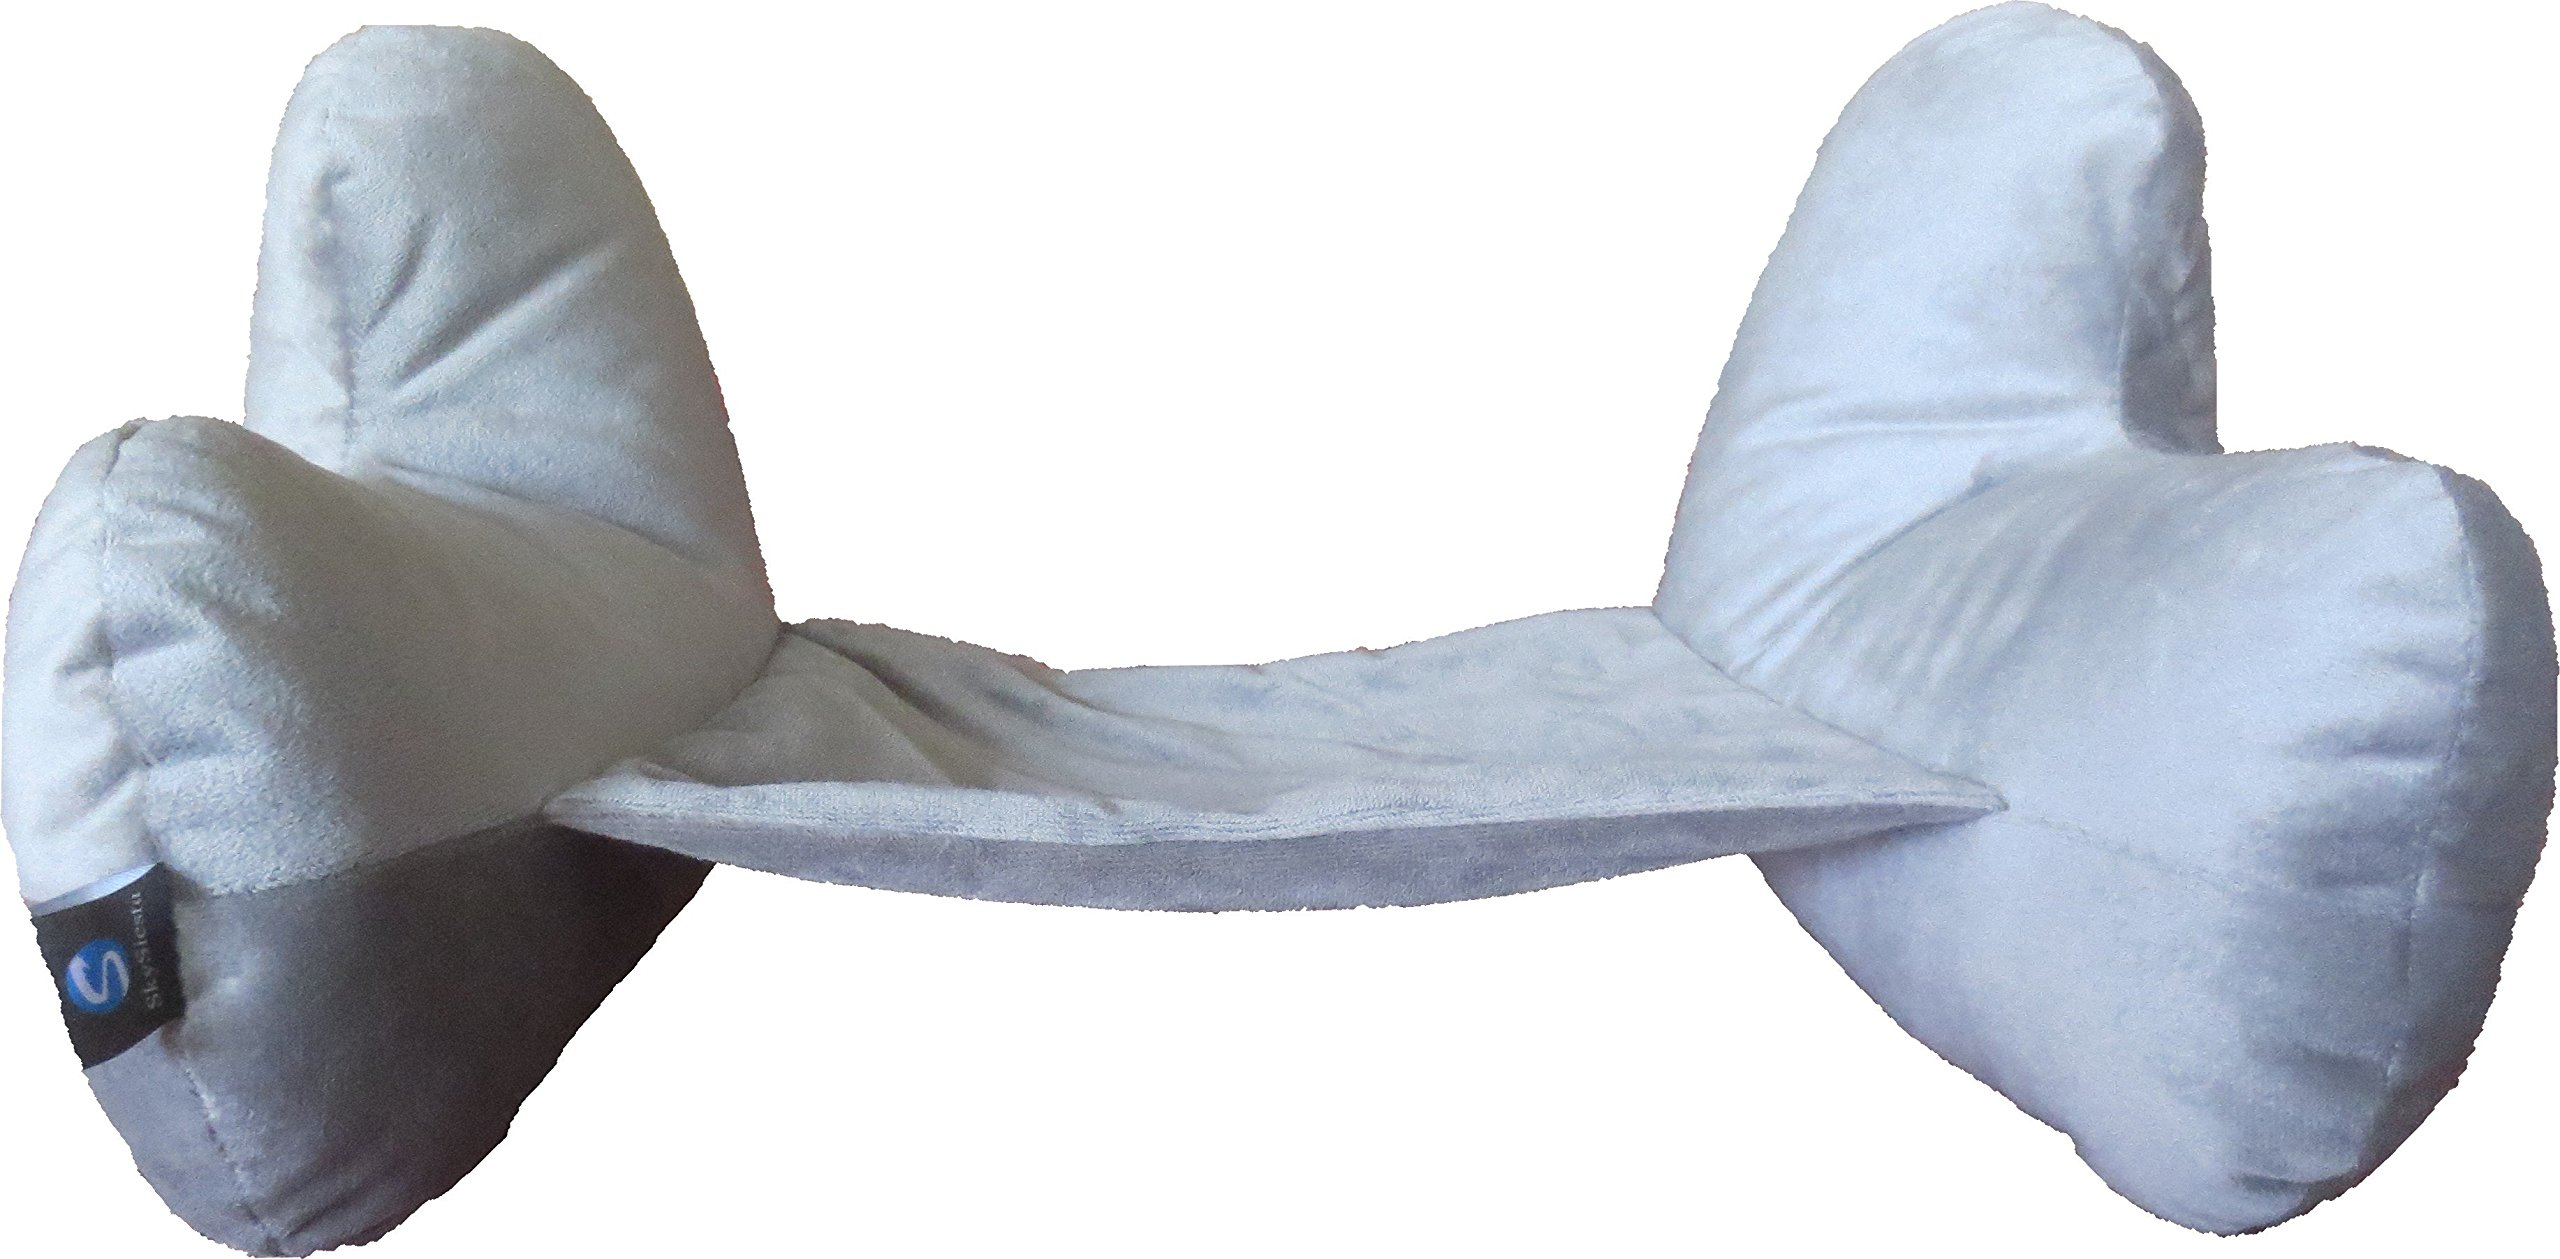 NEW!! SkySiesta SNUG Travel Pillow- Two L-Shaped, Fiber Filled Head Supports, Bag, Eye Mask